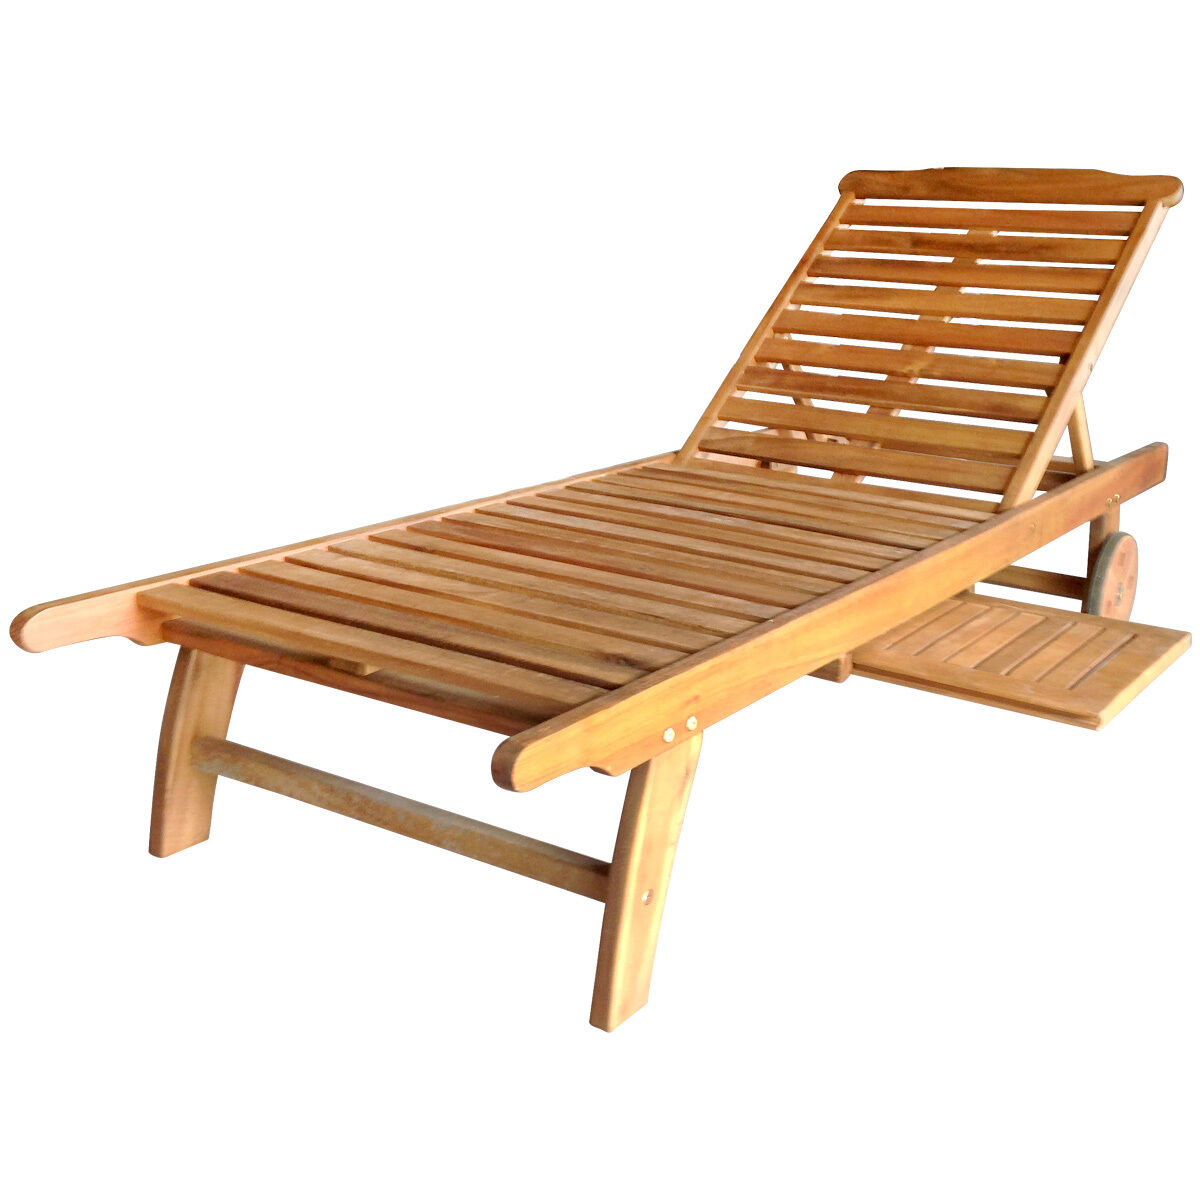 charles bentley hardwood wooden garden patio sun lounger sunbed recliner tray eur 137 37. Black Bedroom Furniture Sets. Home Design Ideas